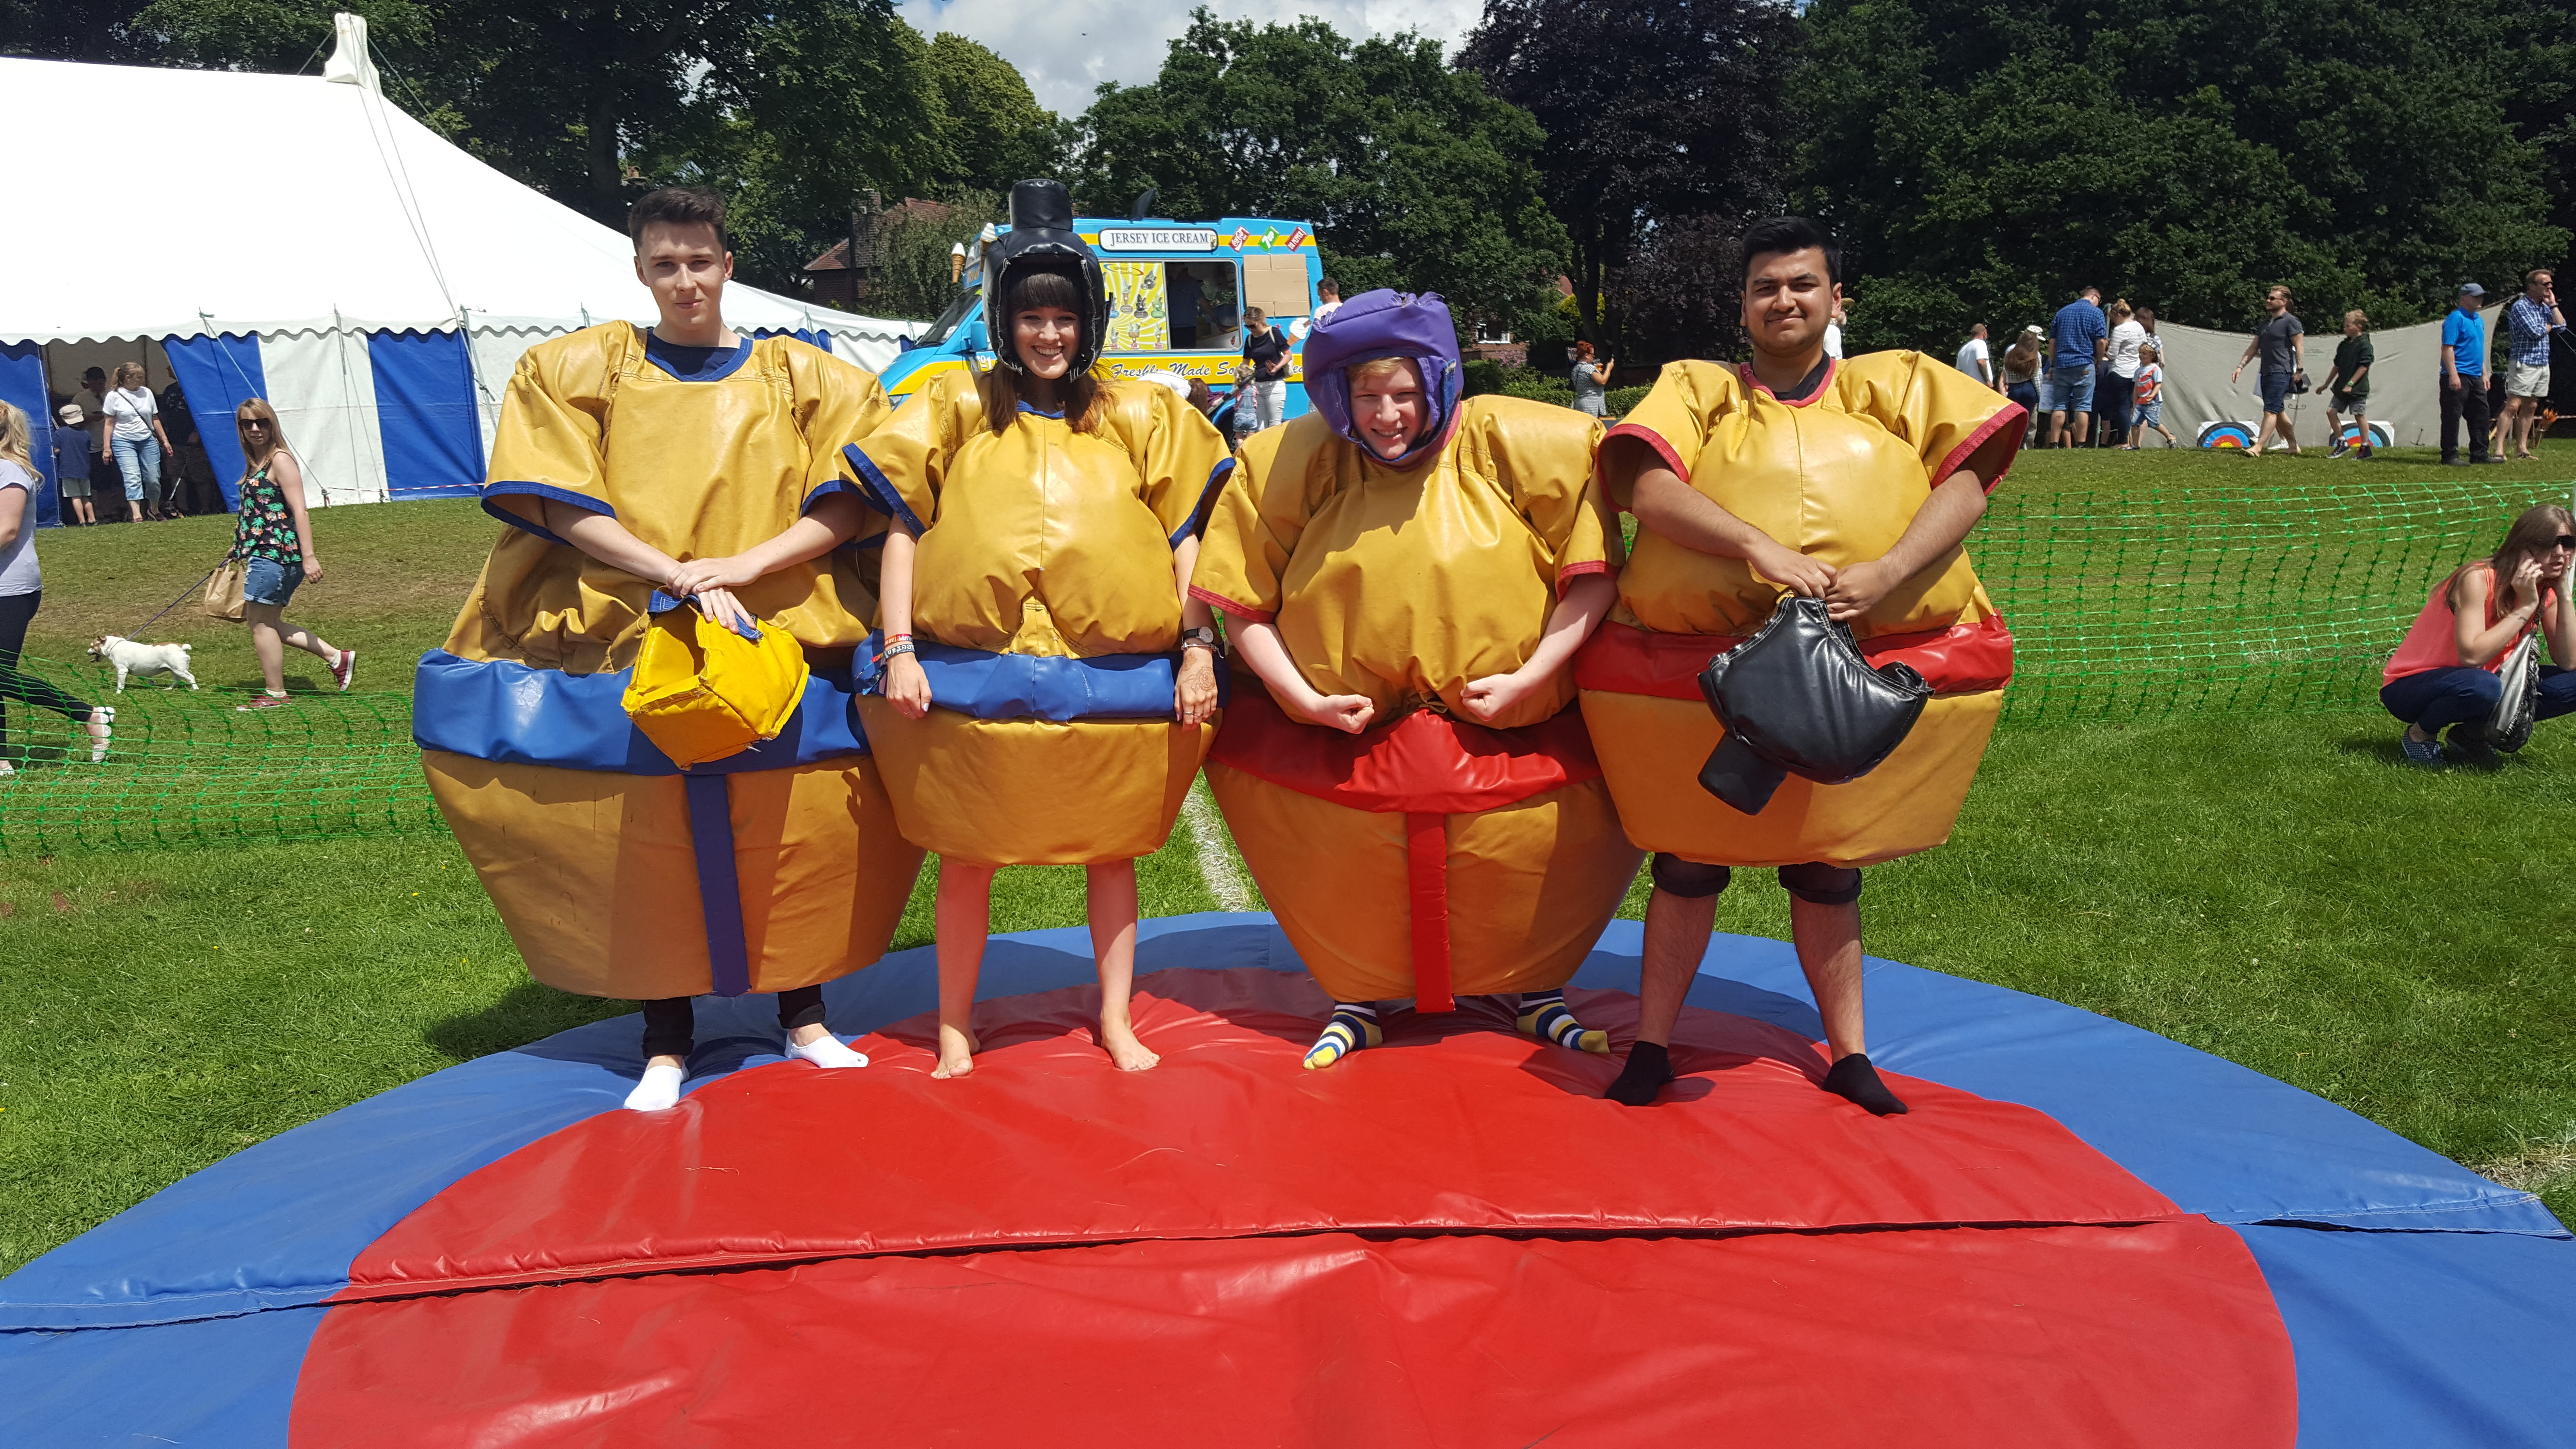 Sumo_suits_for_hire